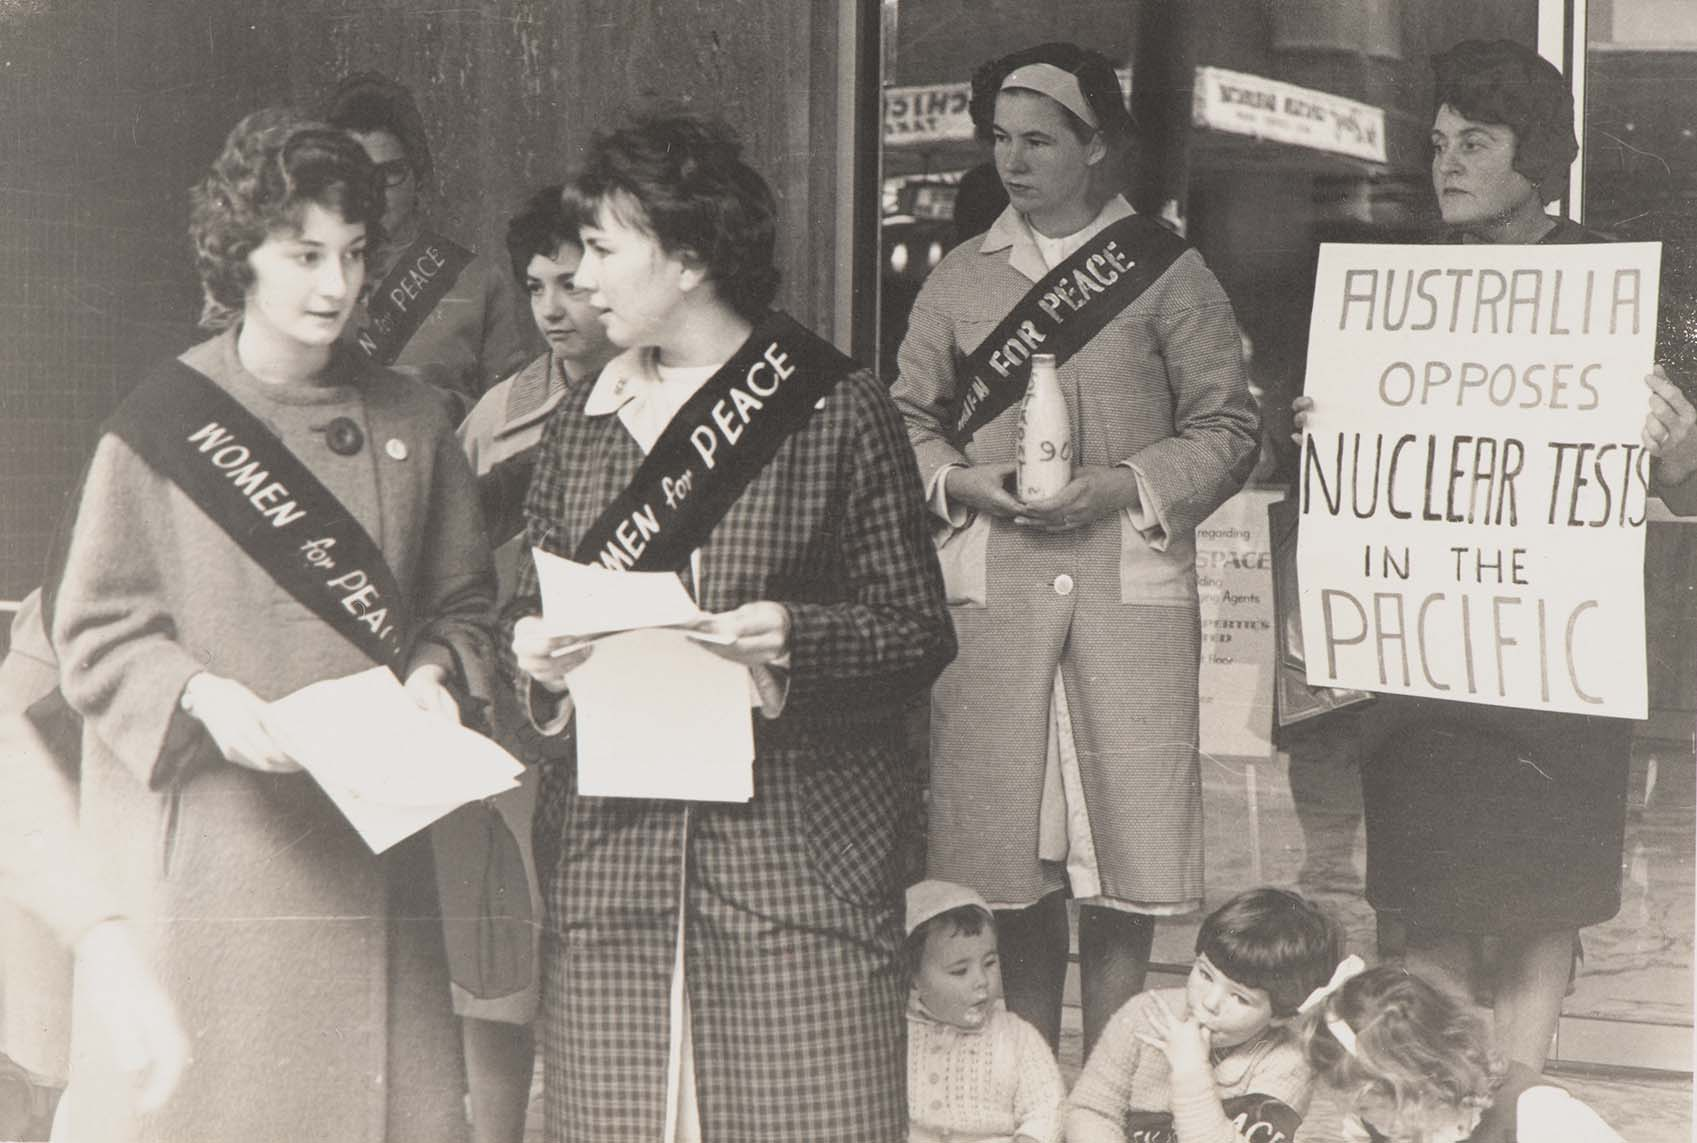 Women for Peace protest outside French Consulate in Sydney, 7 June 1963